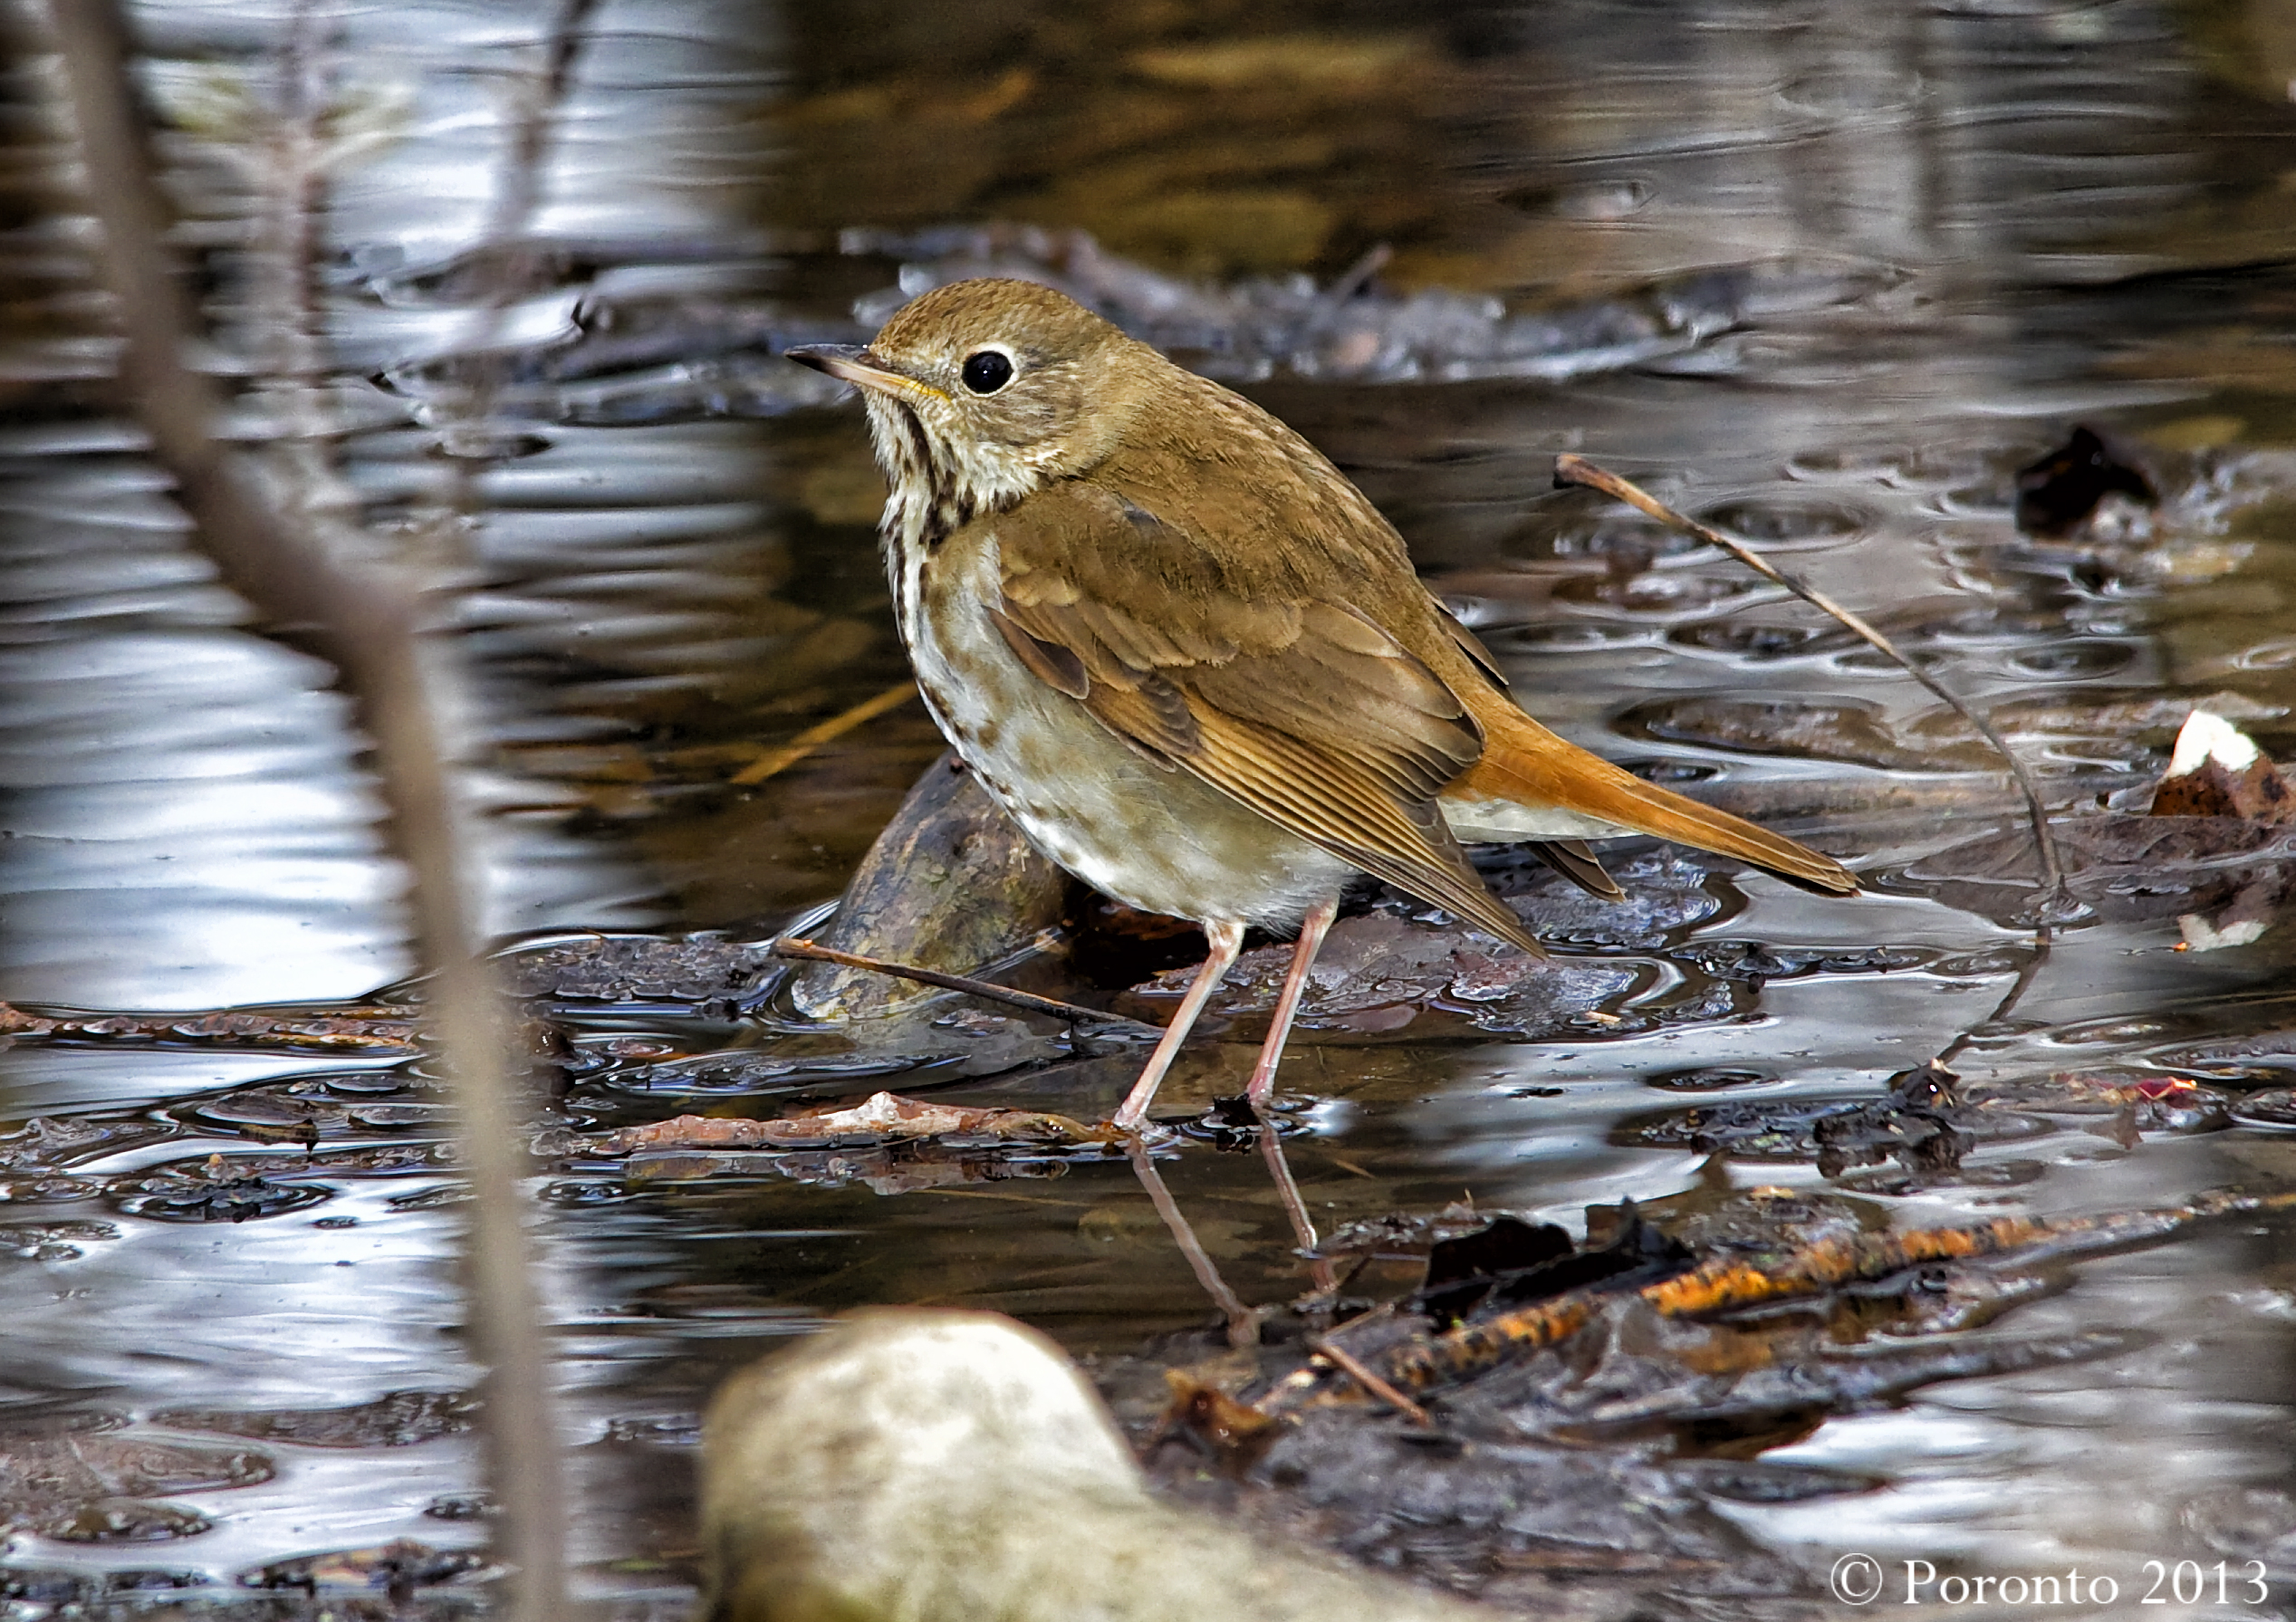 Using a tonal contrast tool in photoshop... I like the change to the water... thrush?